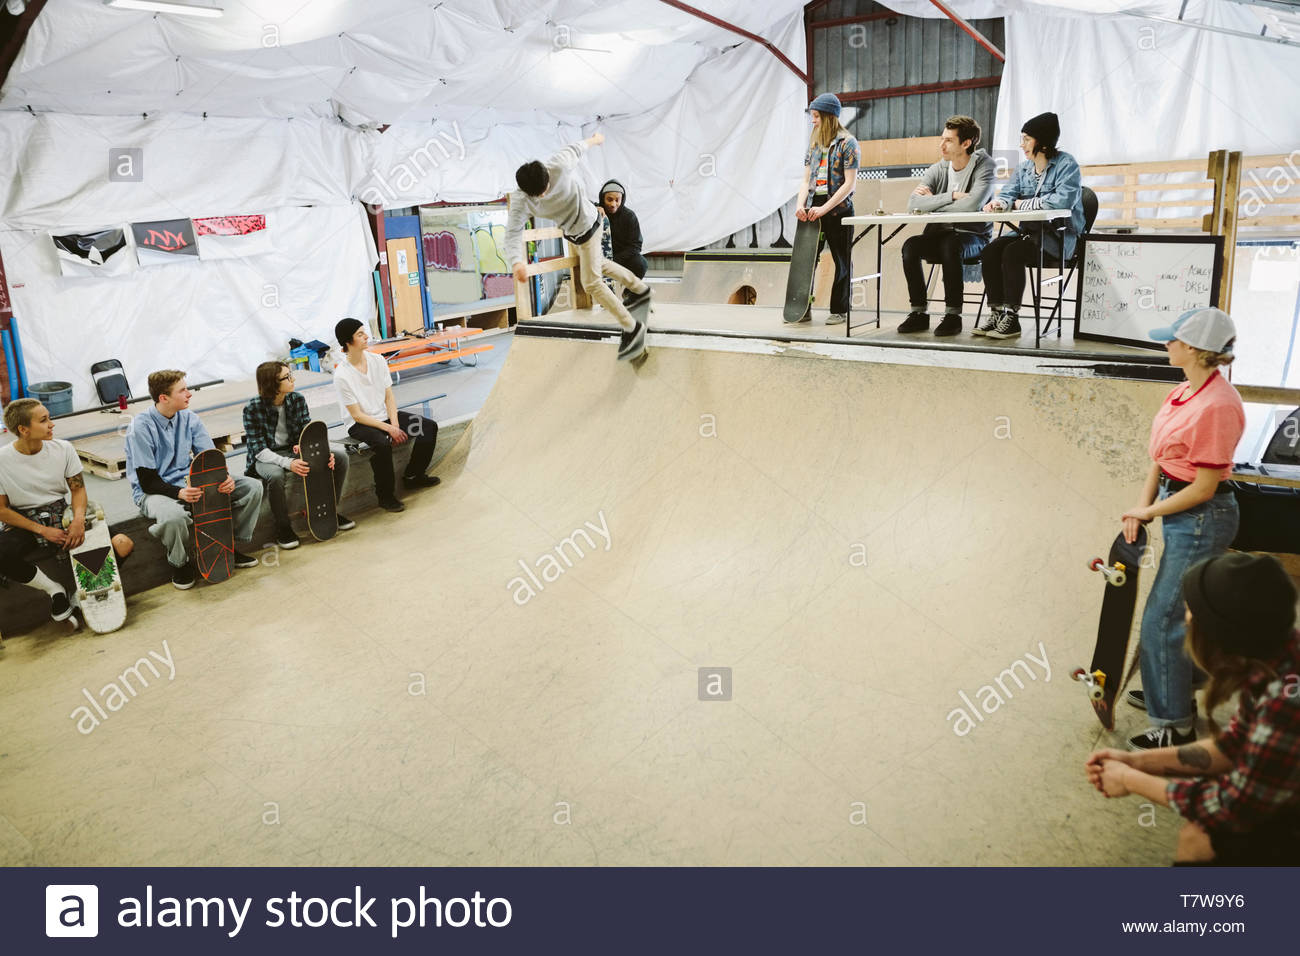 Judges watching skateboard competition from top of ramp at indoor skate park - Stock Image